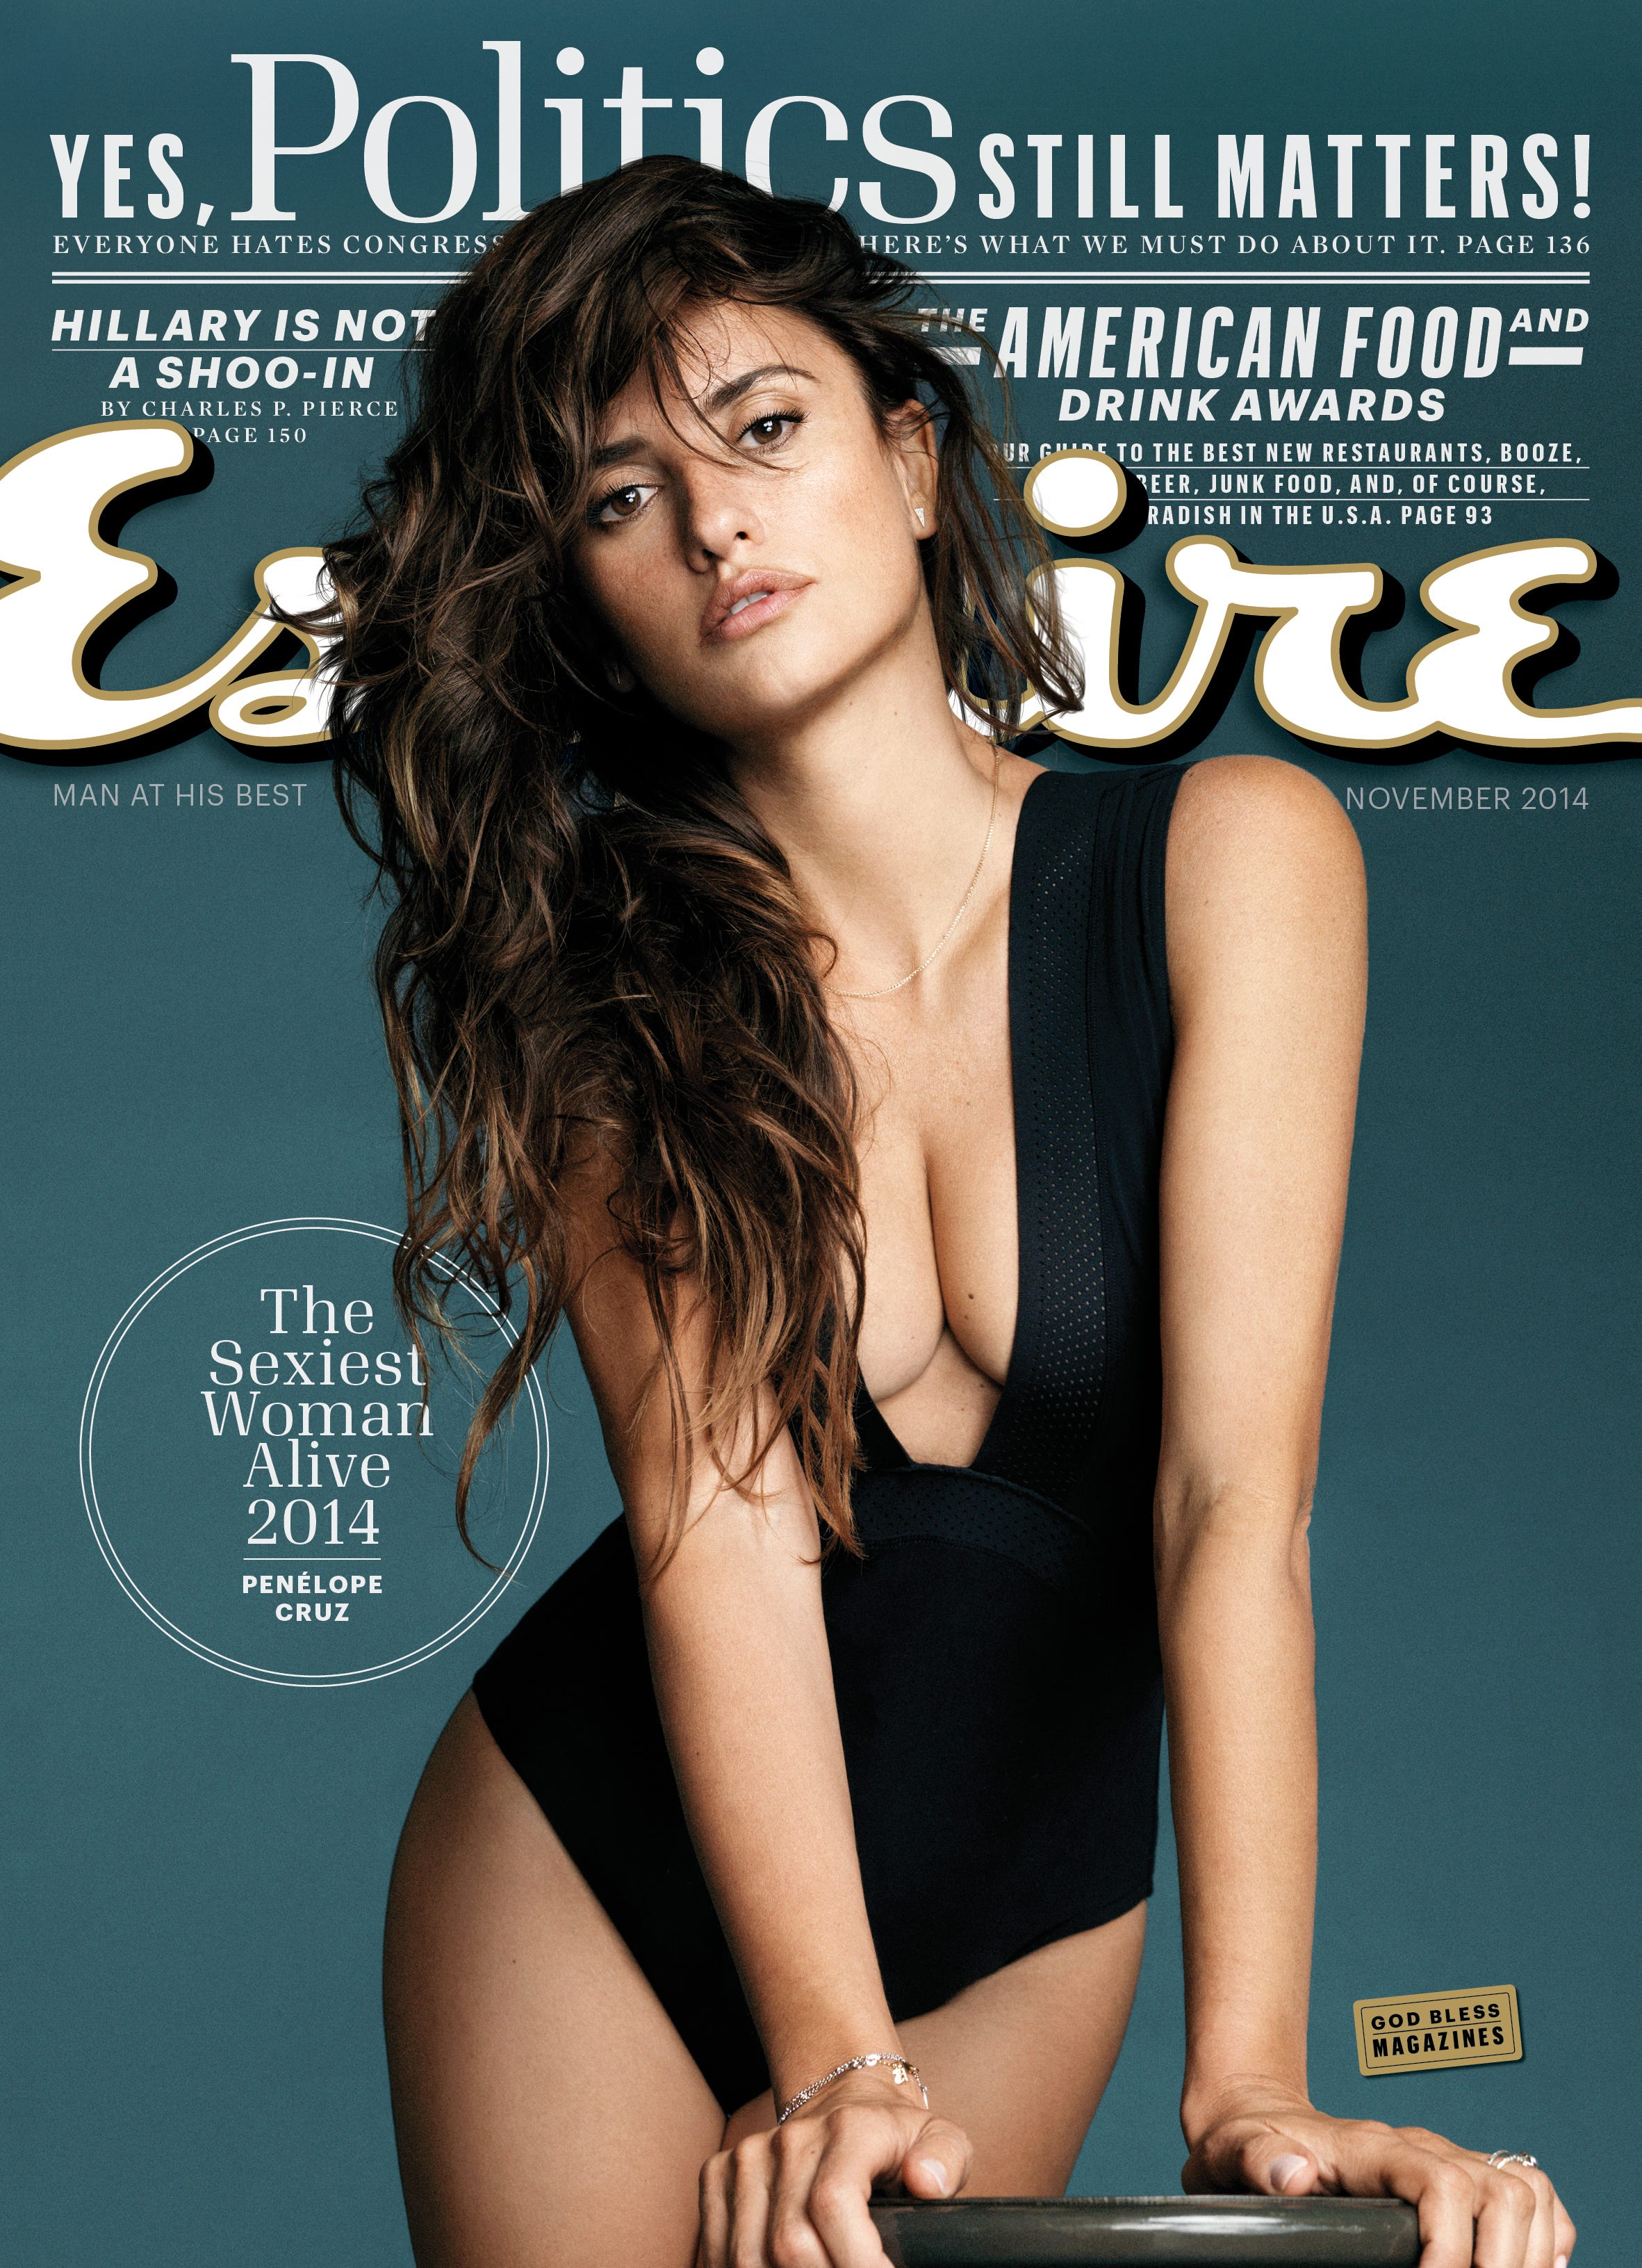 Who is the sexiest woman alive photos 61